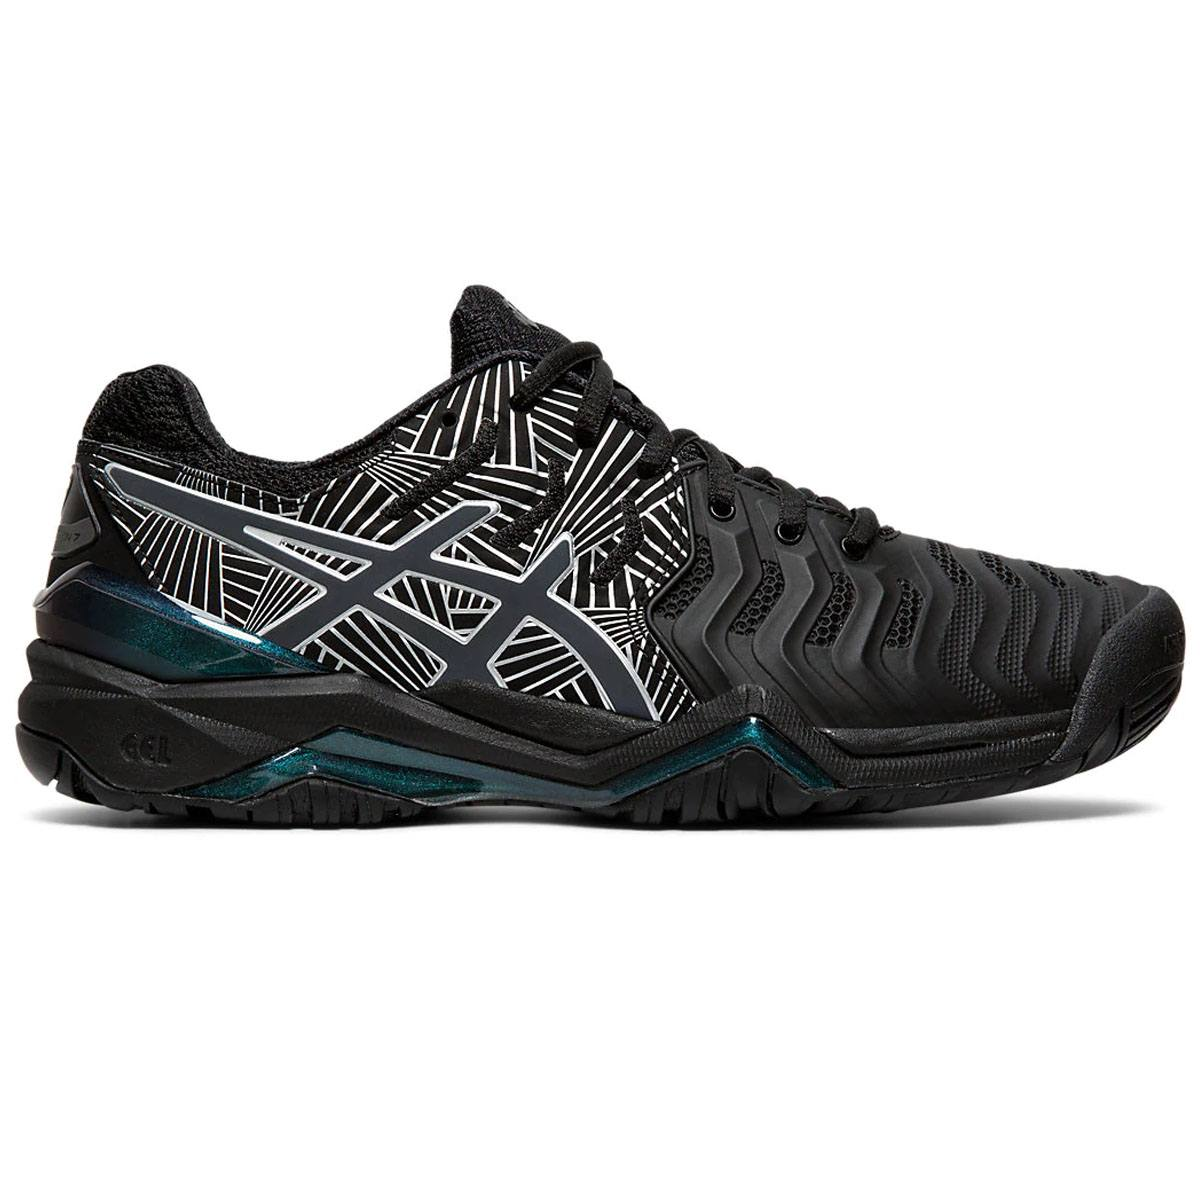 Tênis Asics Gel Resolution 7 L.E. Masculino